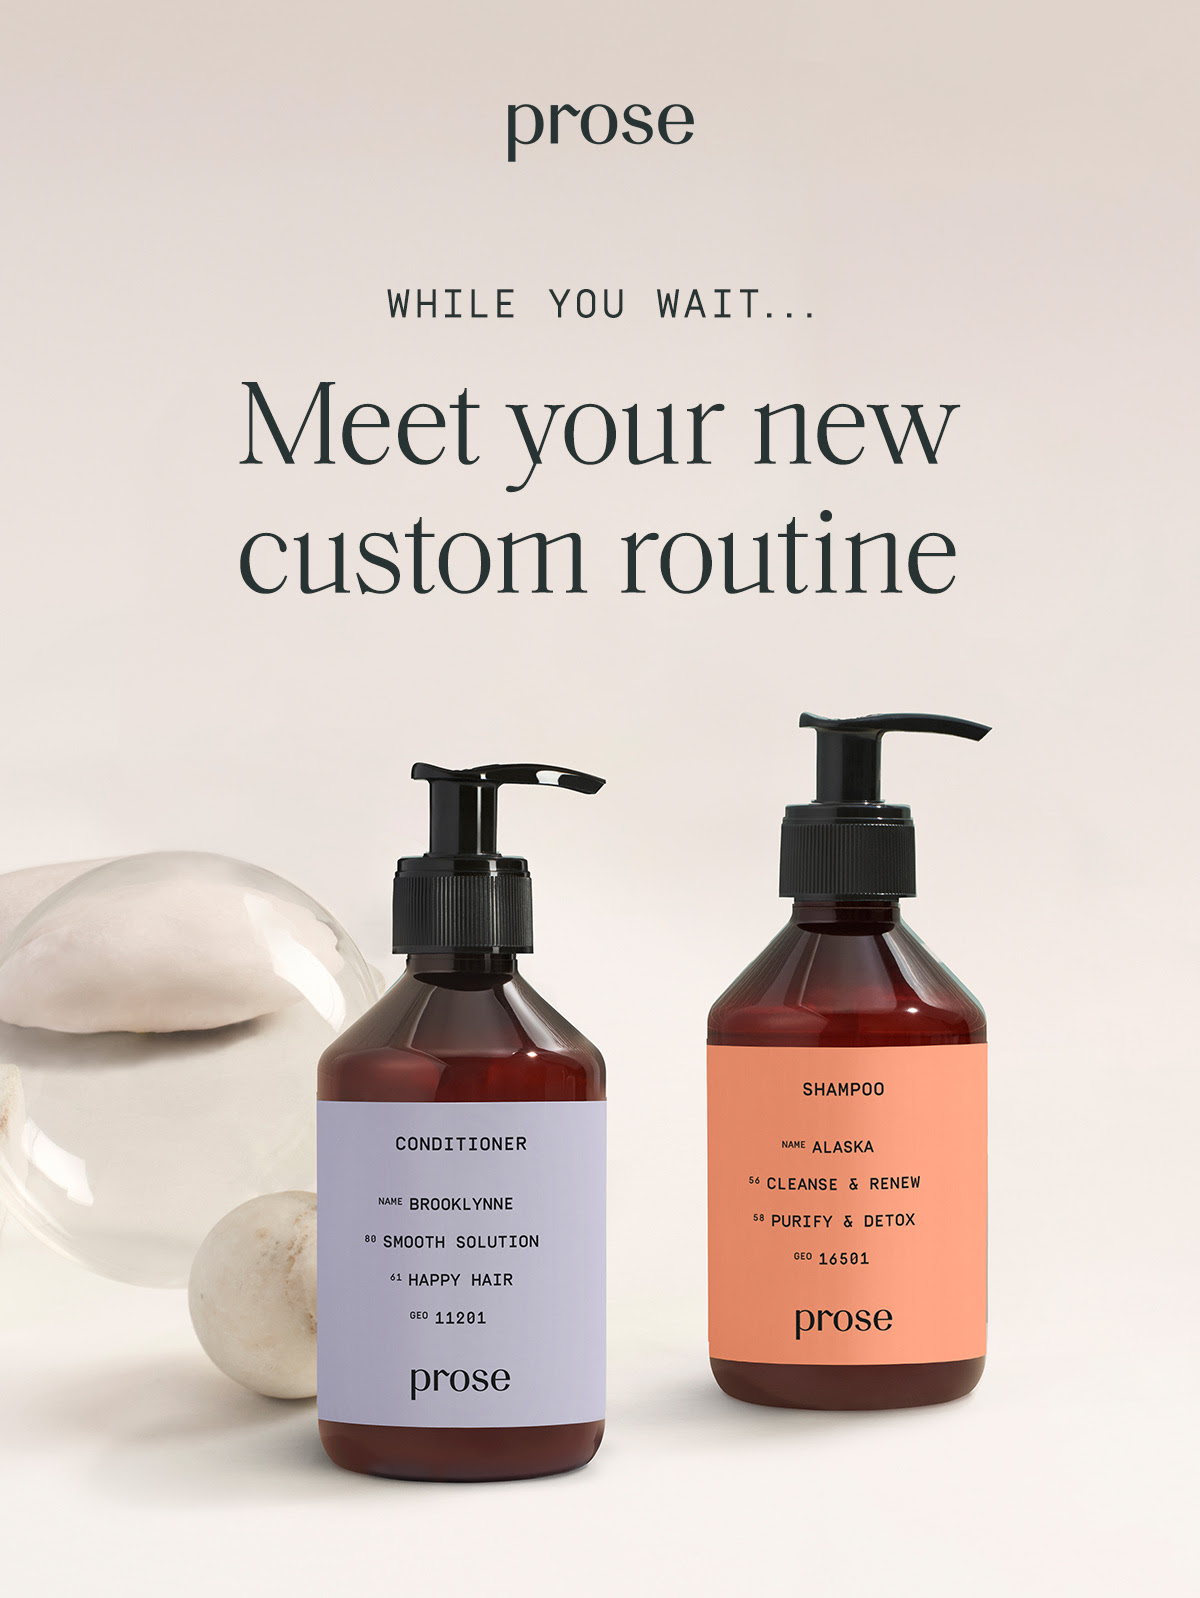 While you wait... Meet your new custom routine